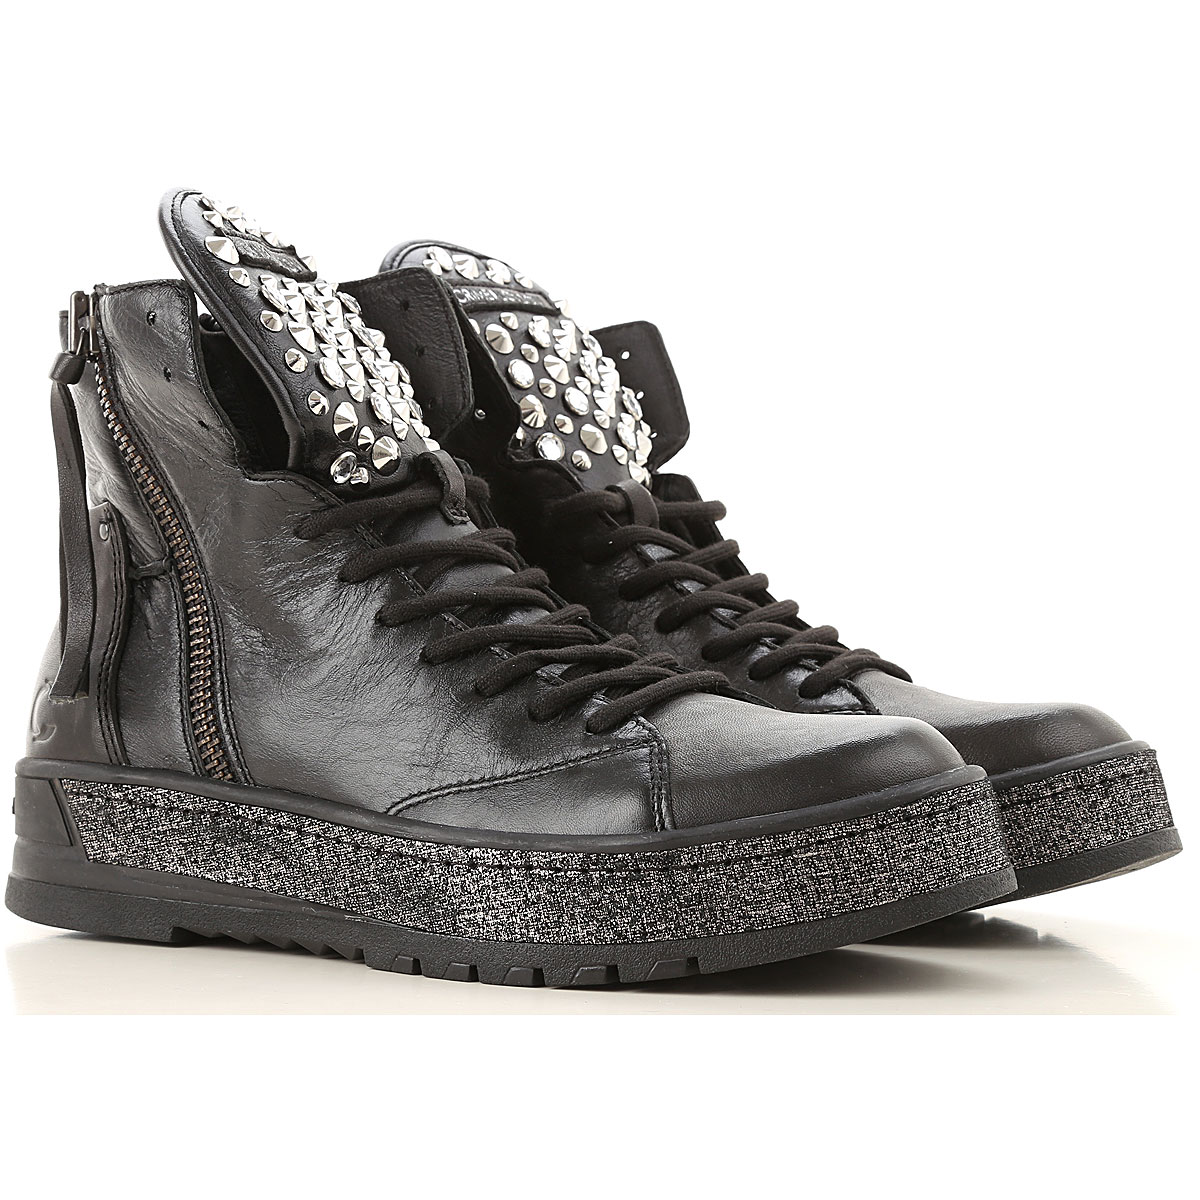 Crime Sneakers for Women On Sale, Black, Leather, 2019, 6 7 8 9